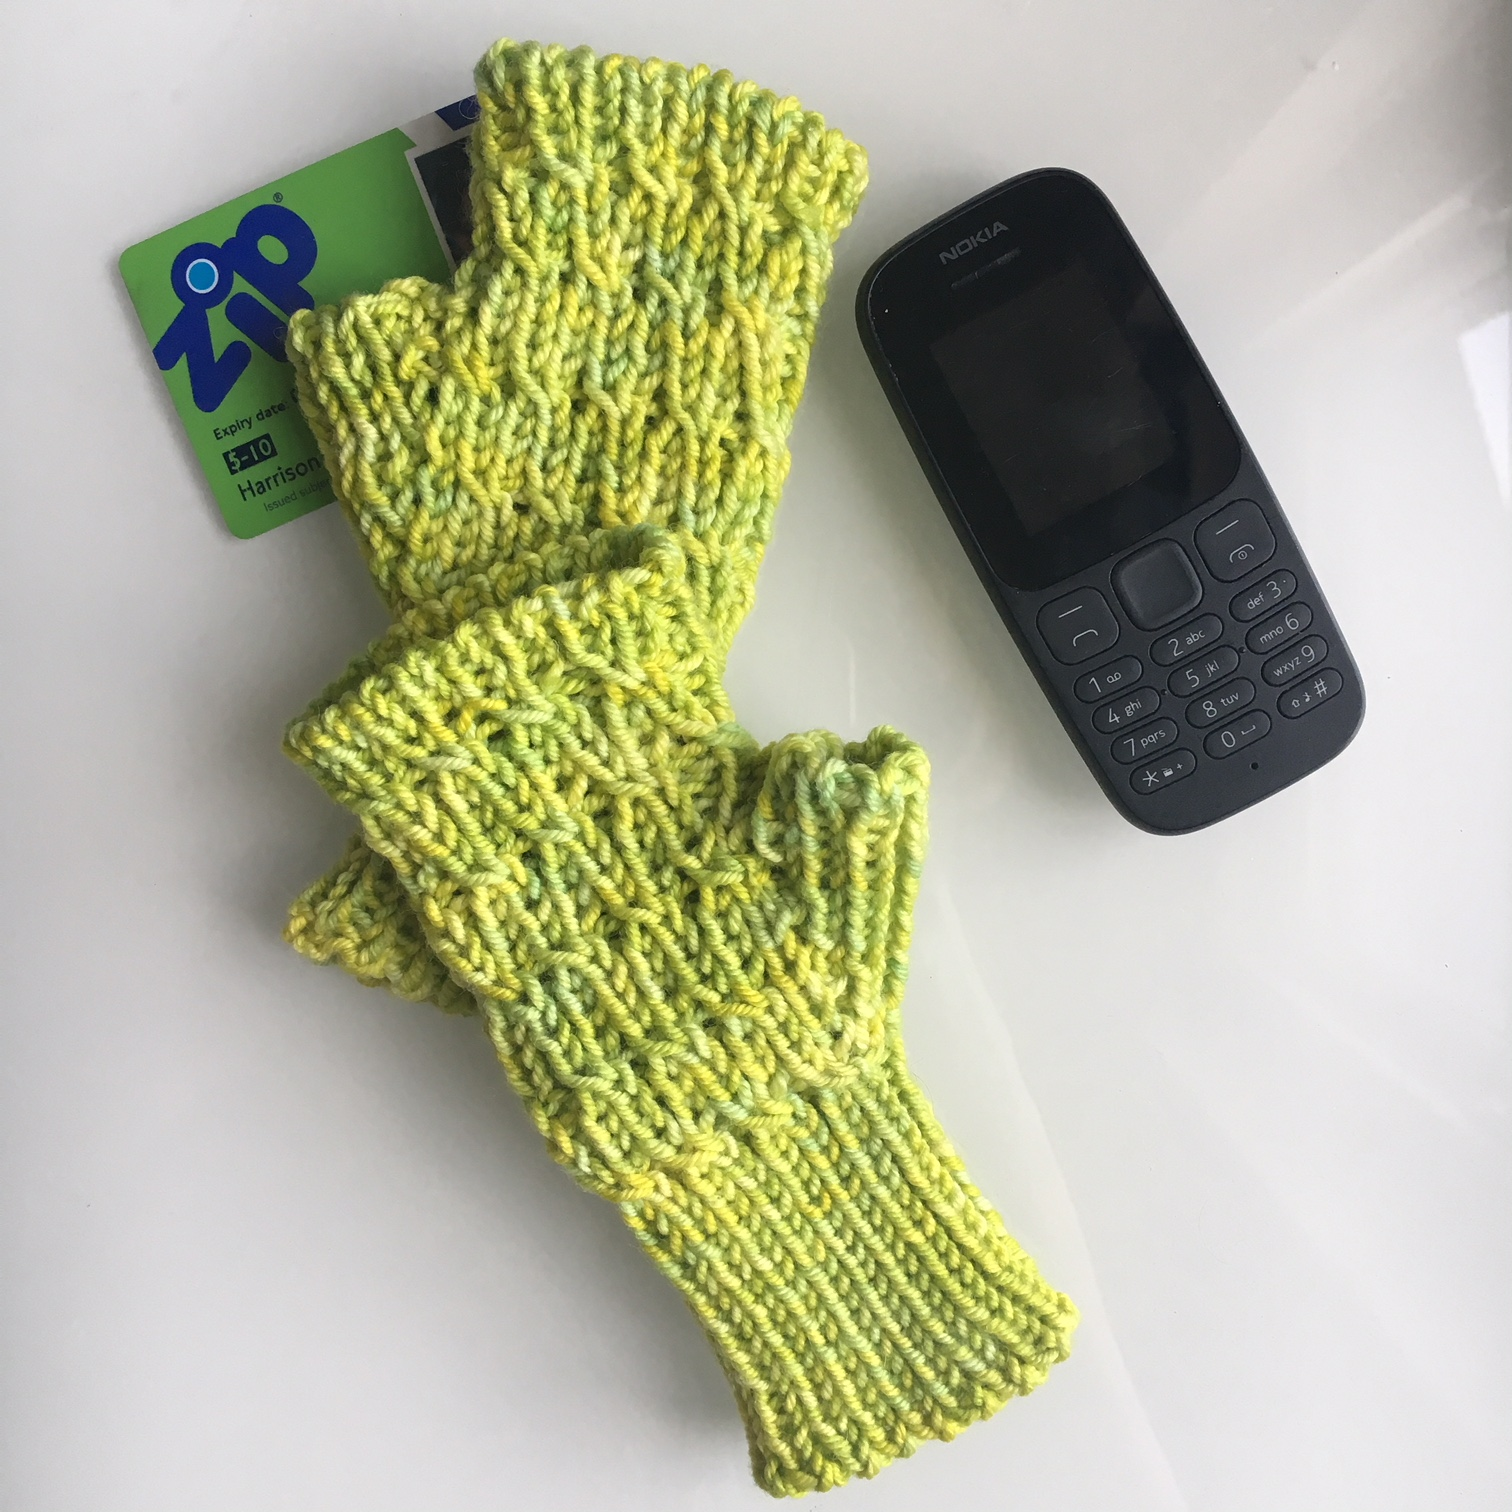 New winter mitts for Mr. H. Just in time for, er, spring?